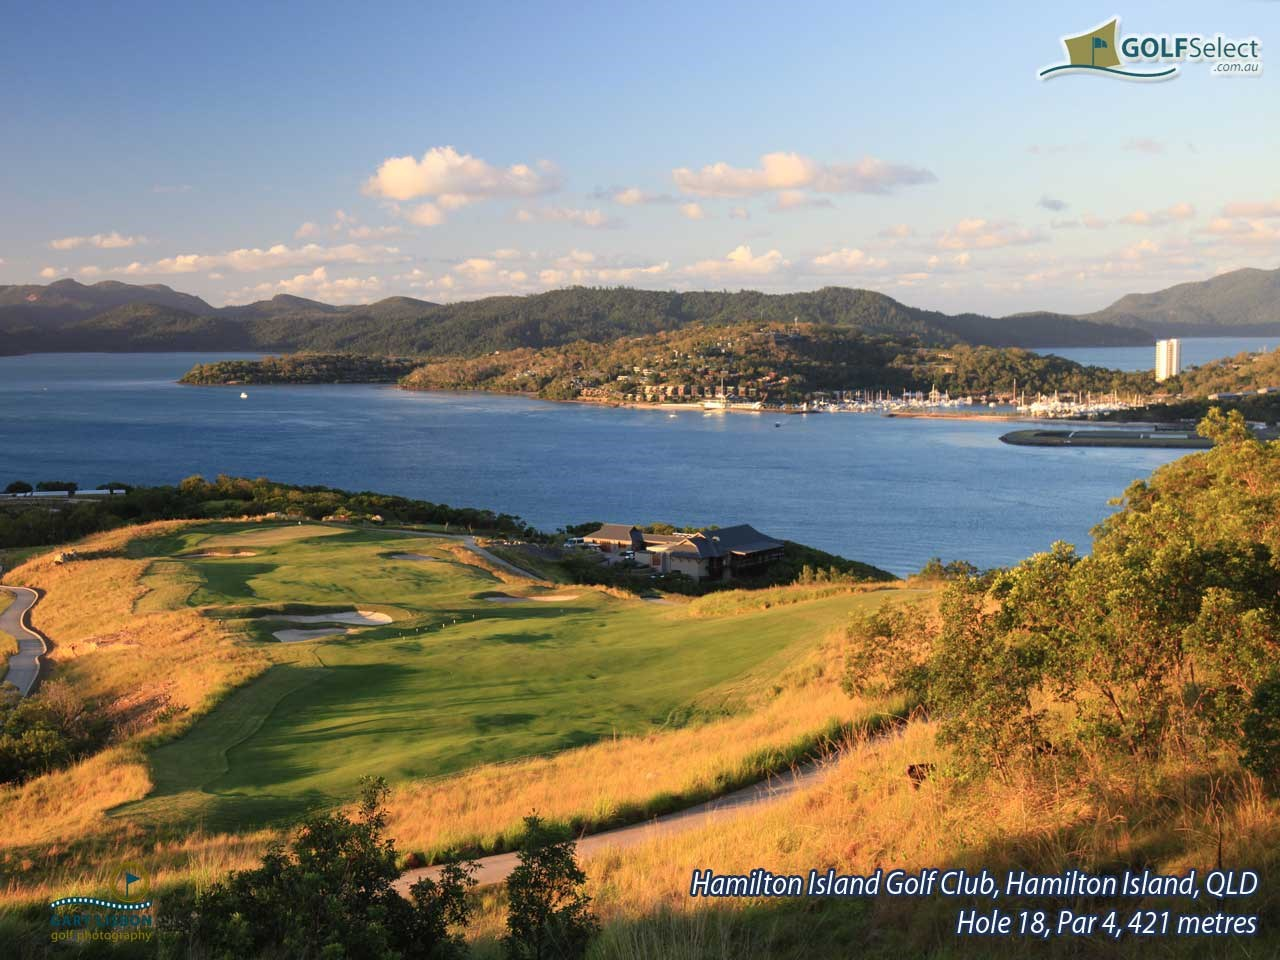 Hamilton Island Golf Club Hole 18, Par 4, 421 metres